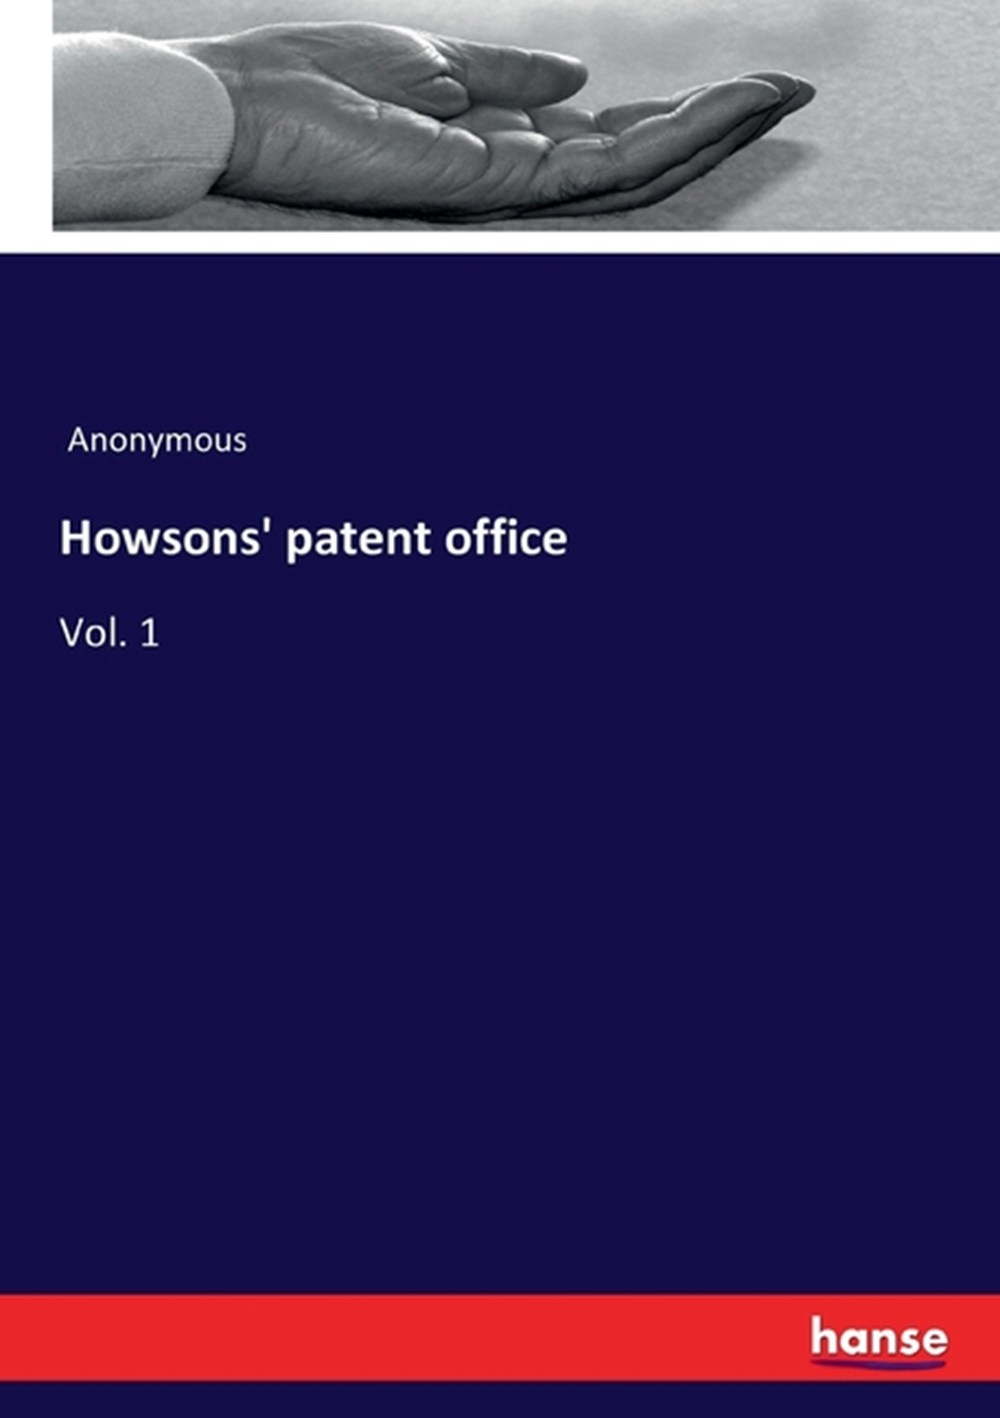 Howsons' patent office Vol. 1